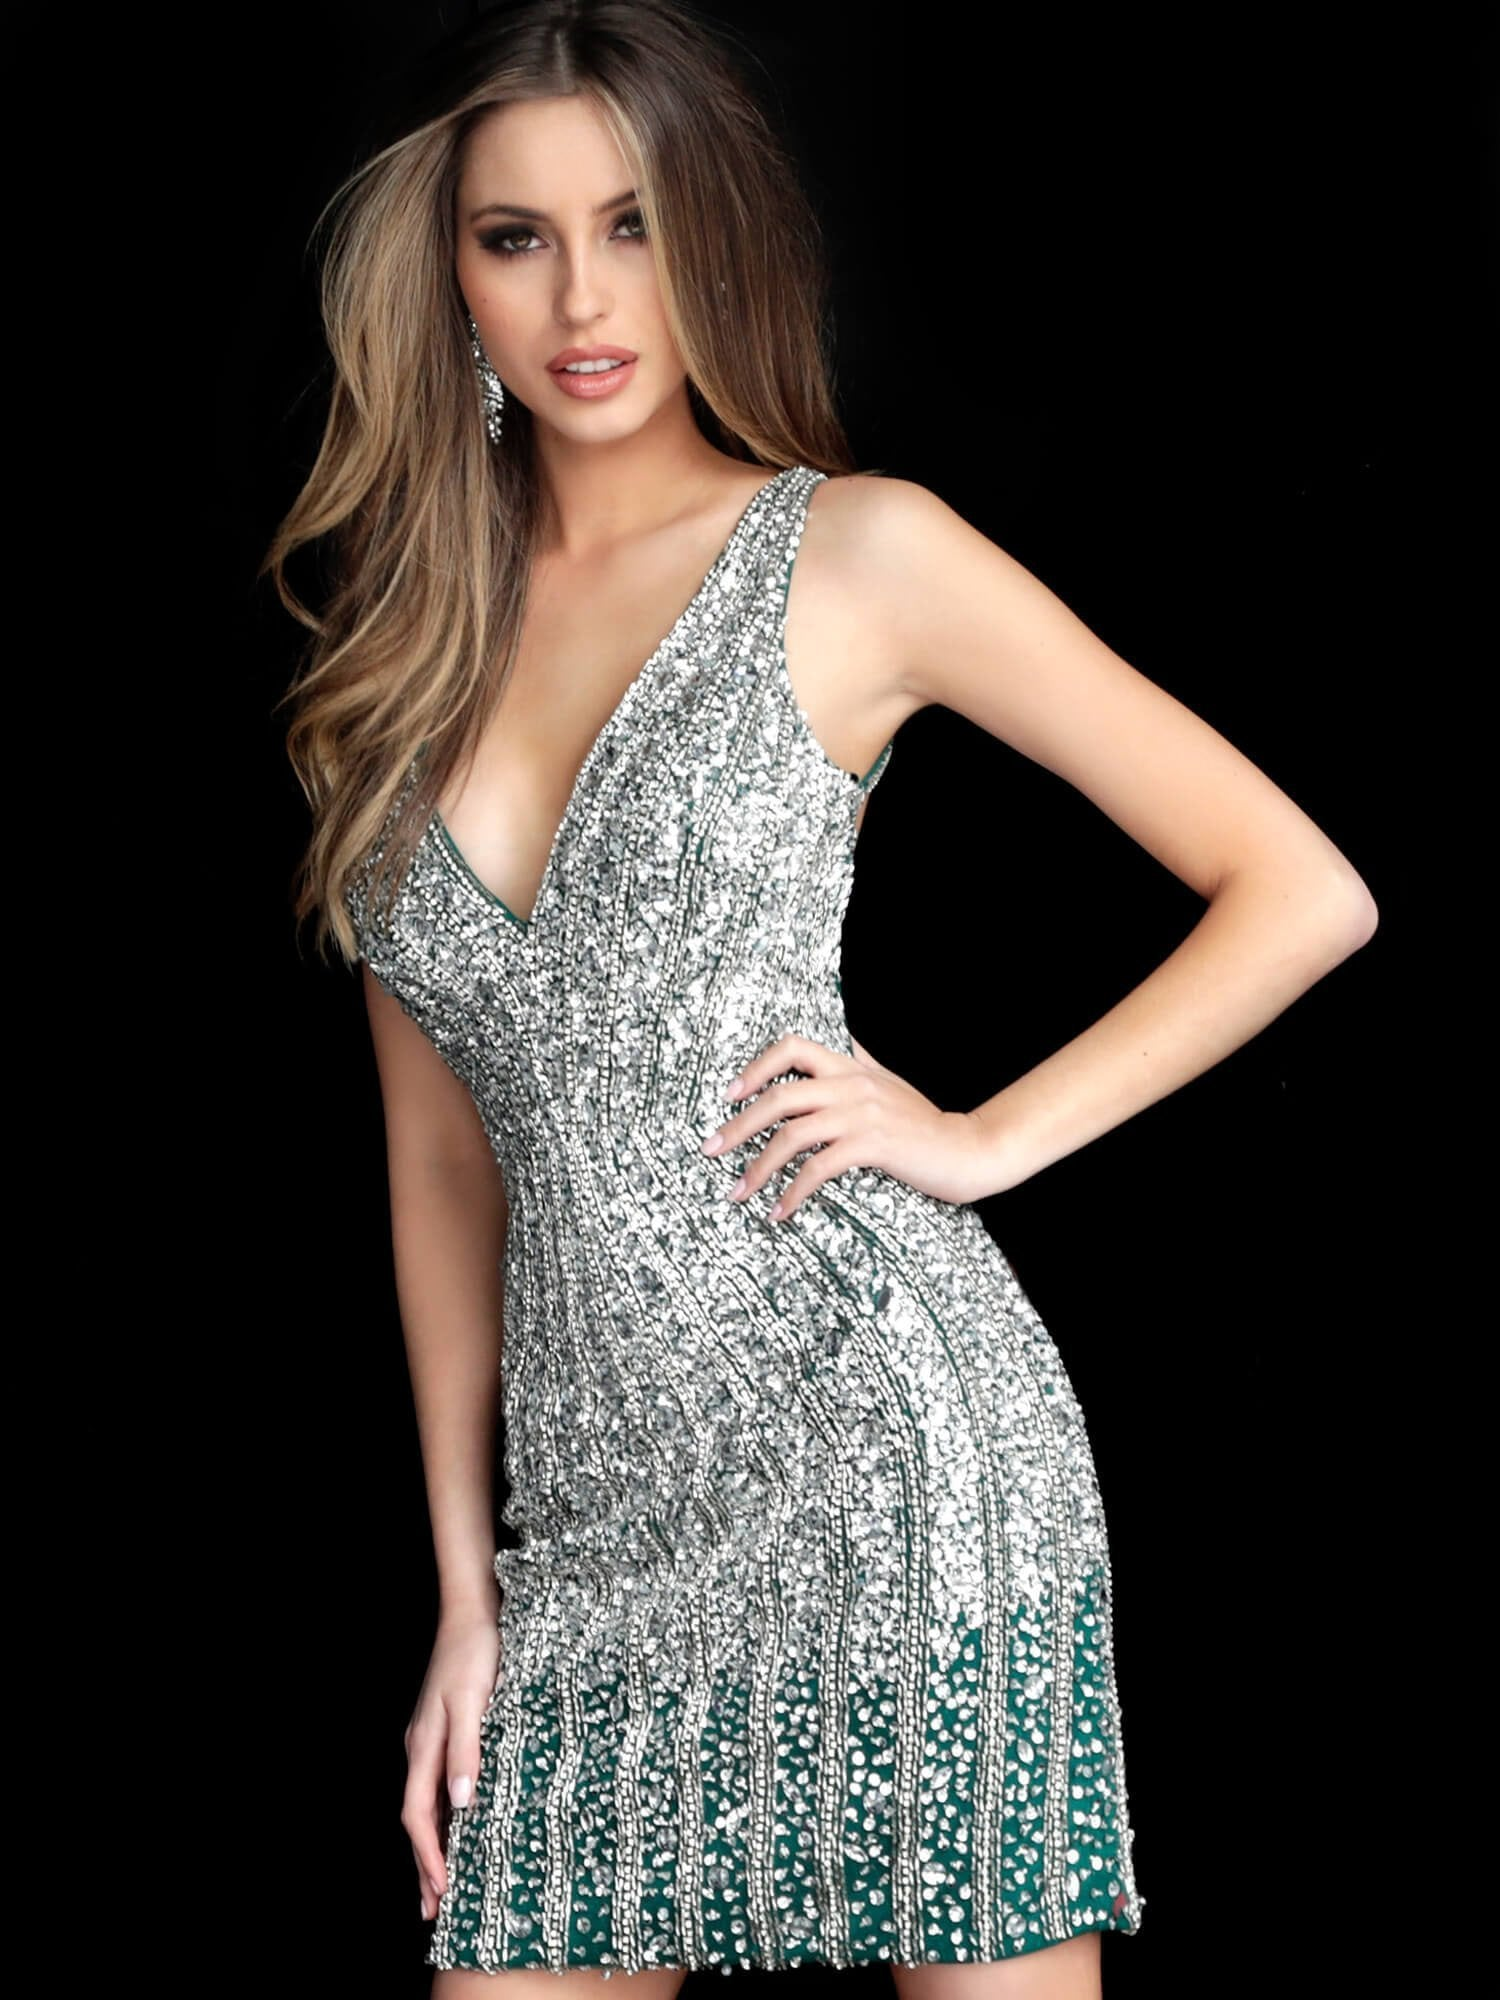 Jovani - Ornate Plunging Bodice Sheath Dress 2804SC In Silver